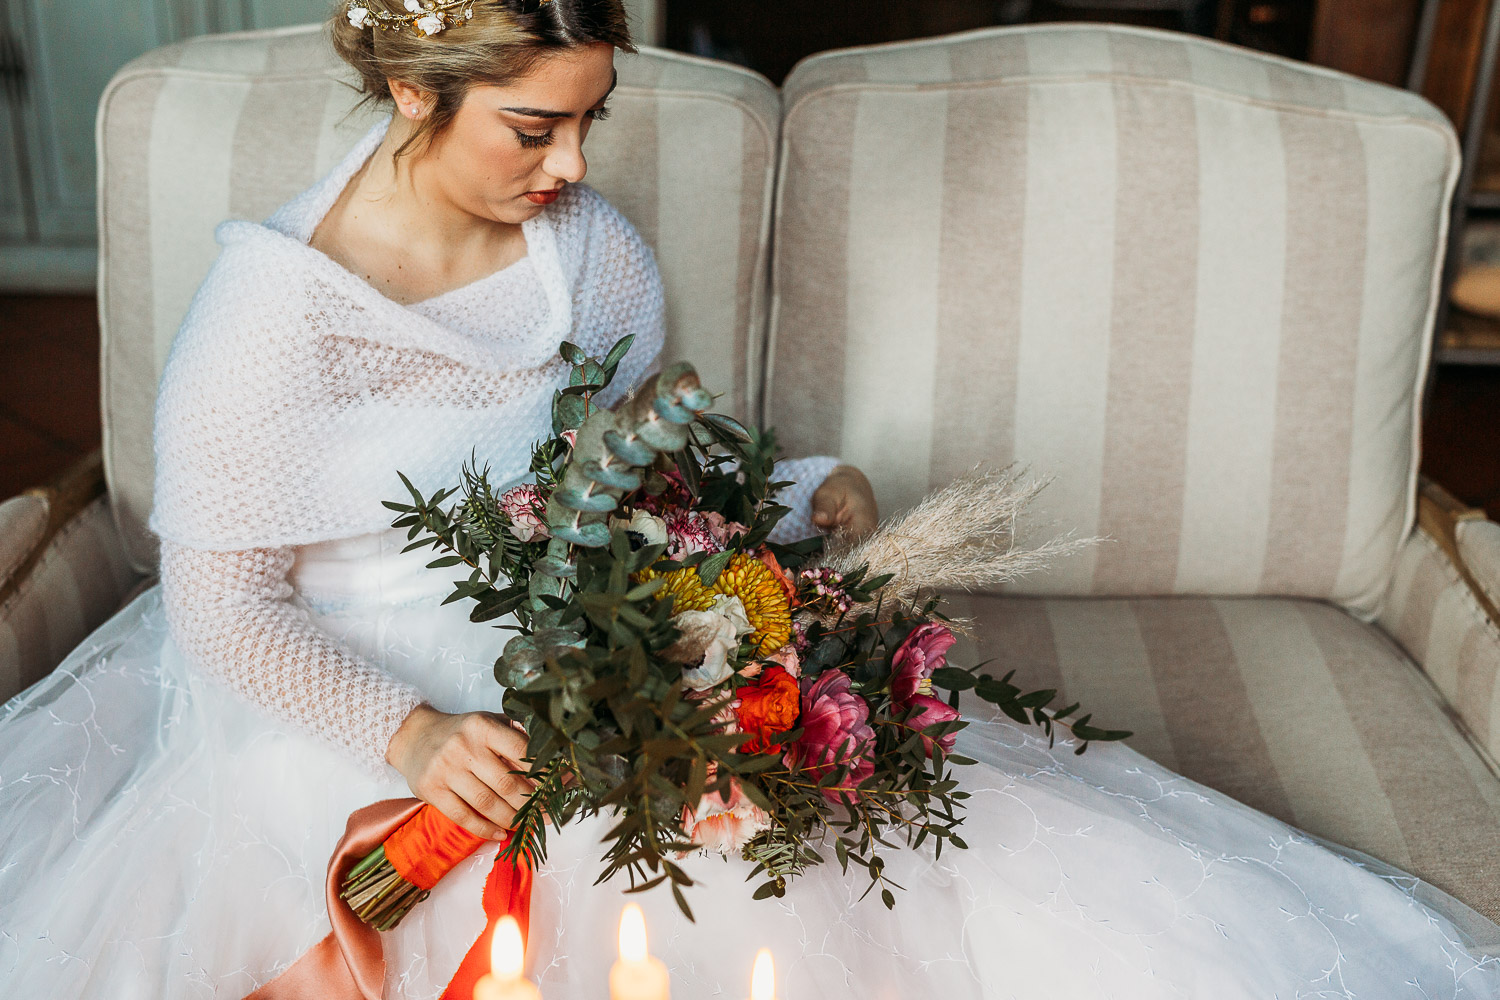 Bride wearing a Marianna Lanzilli tulle dress holding a peach orange pink bouquet at Tenimento al Castello